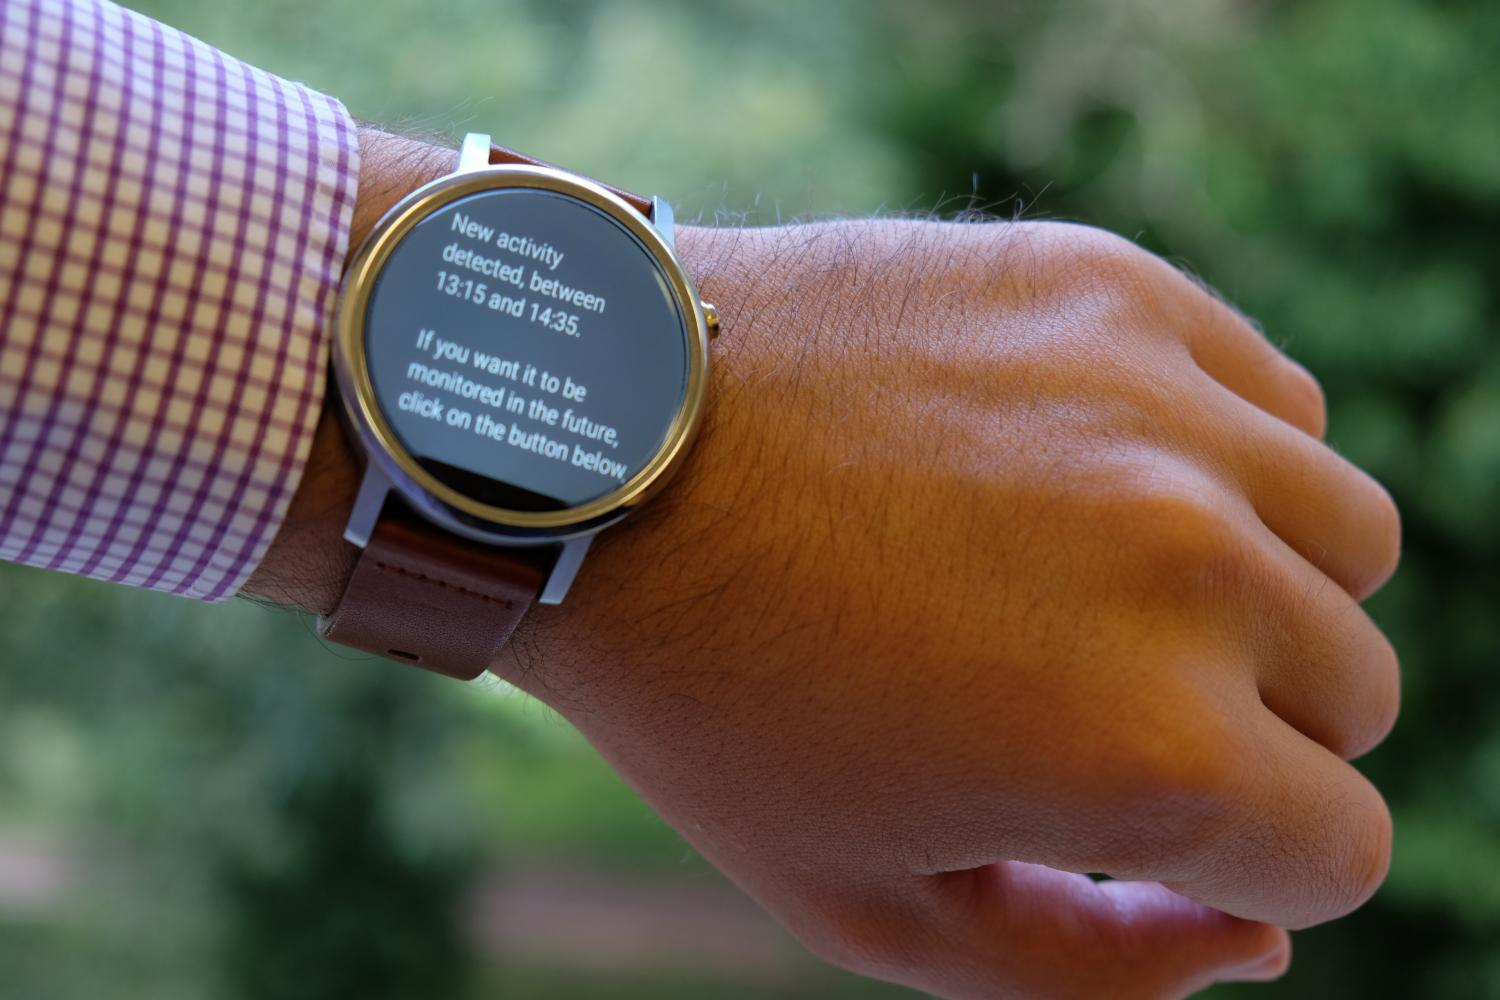 Smart watches will soon be able to detect your every move